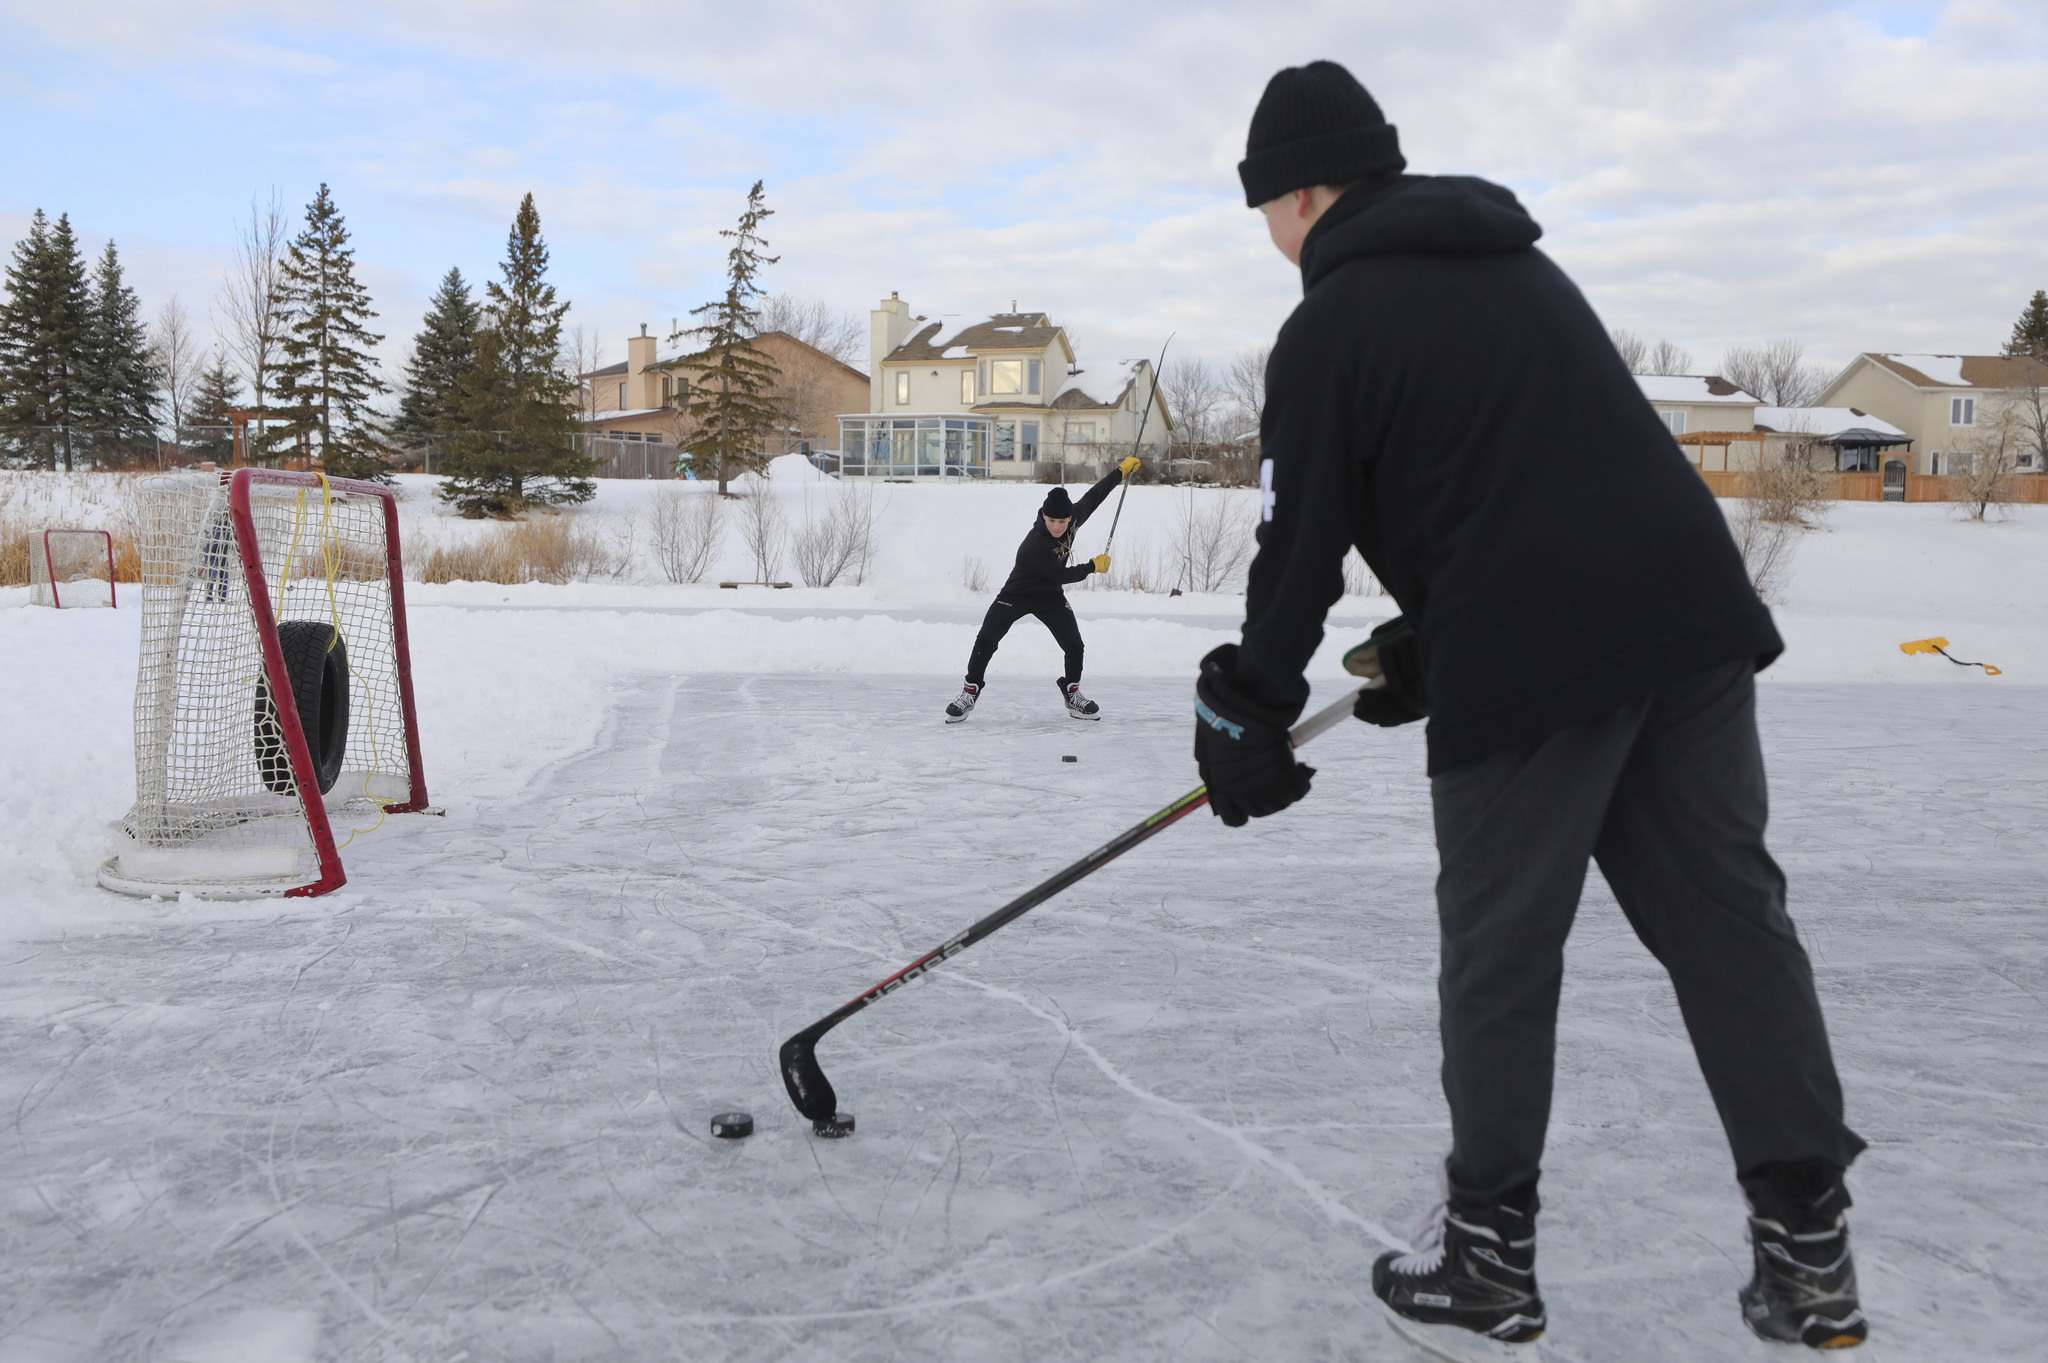 Two 14-year-old boys take shots at a net set up on a retention pond in St. Vital on Tuesday. Coun. Janice Lukes would like to see if more retention ponds can be used for skating. (Ruth Bonneville / Winnipeg Free Press)</p>